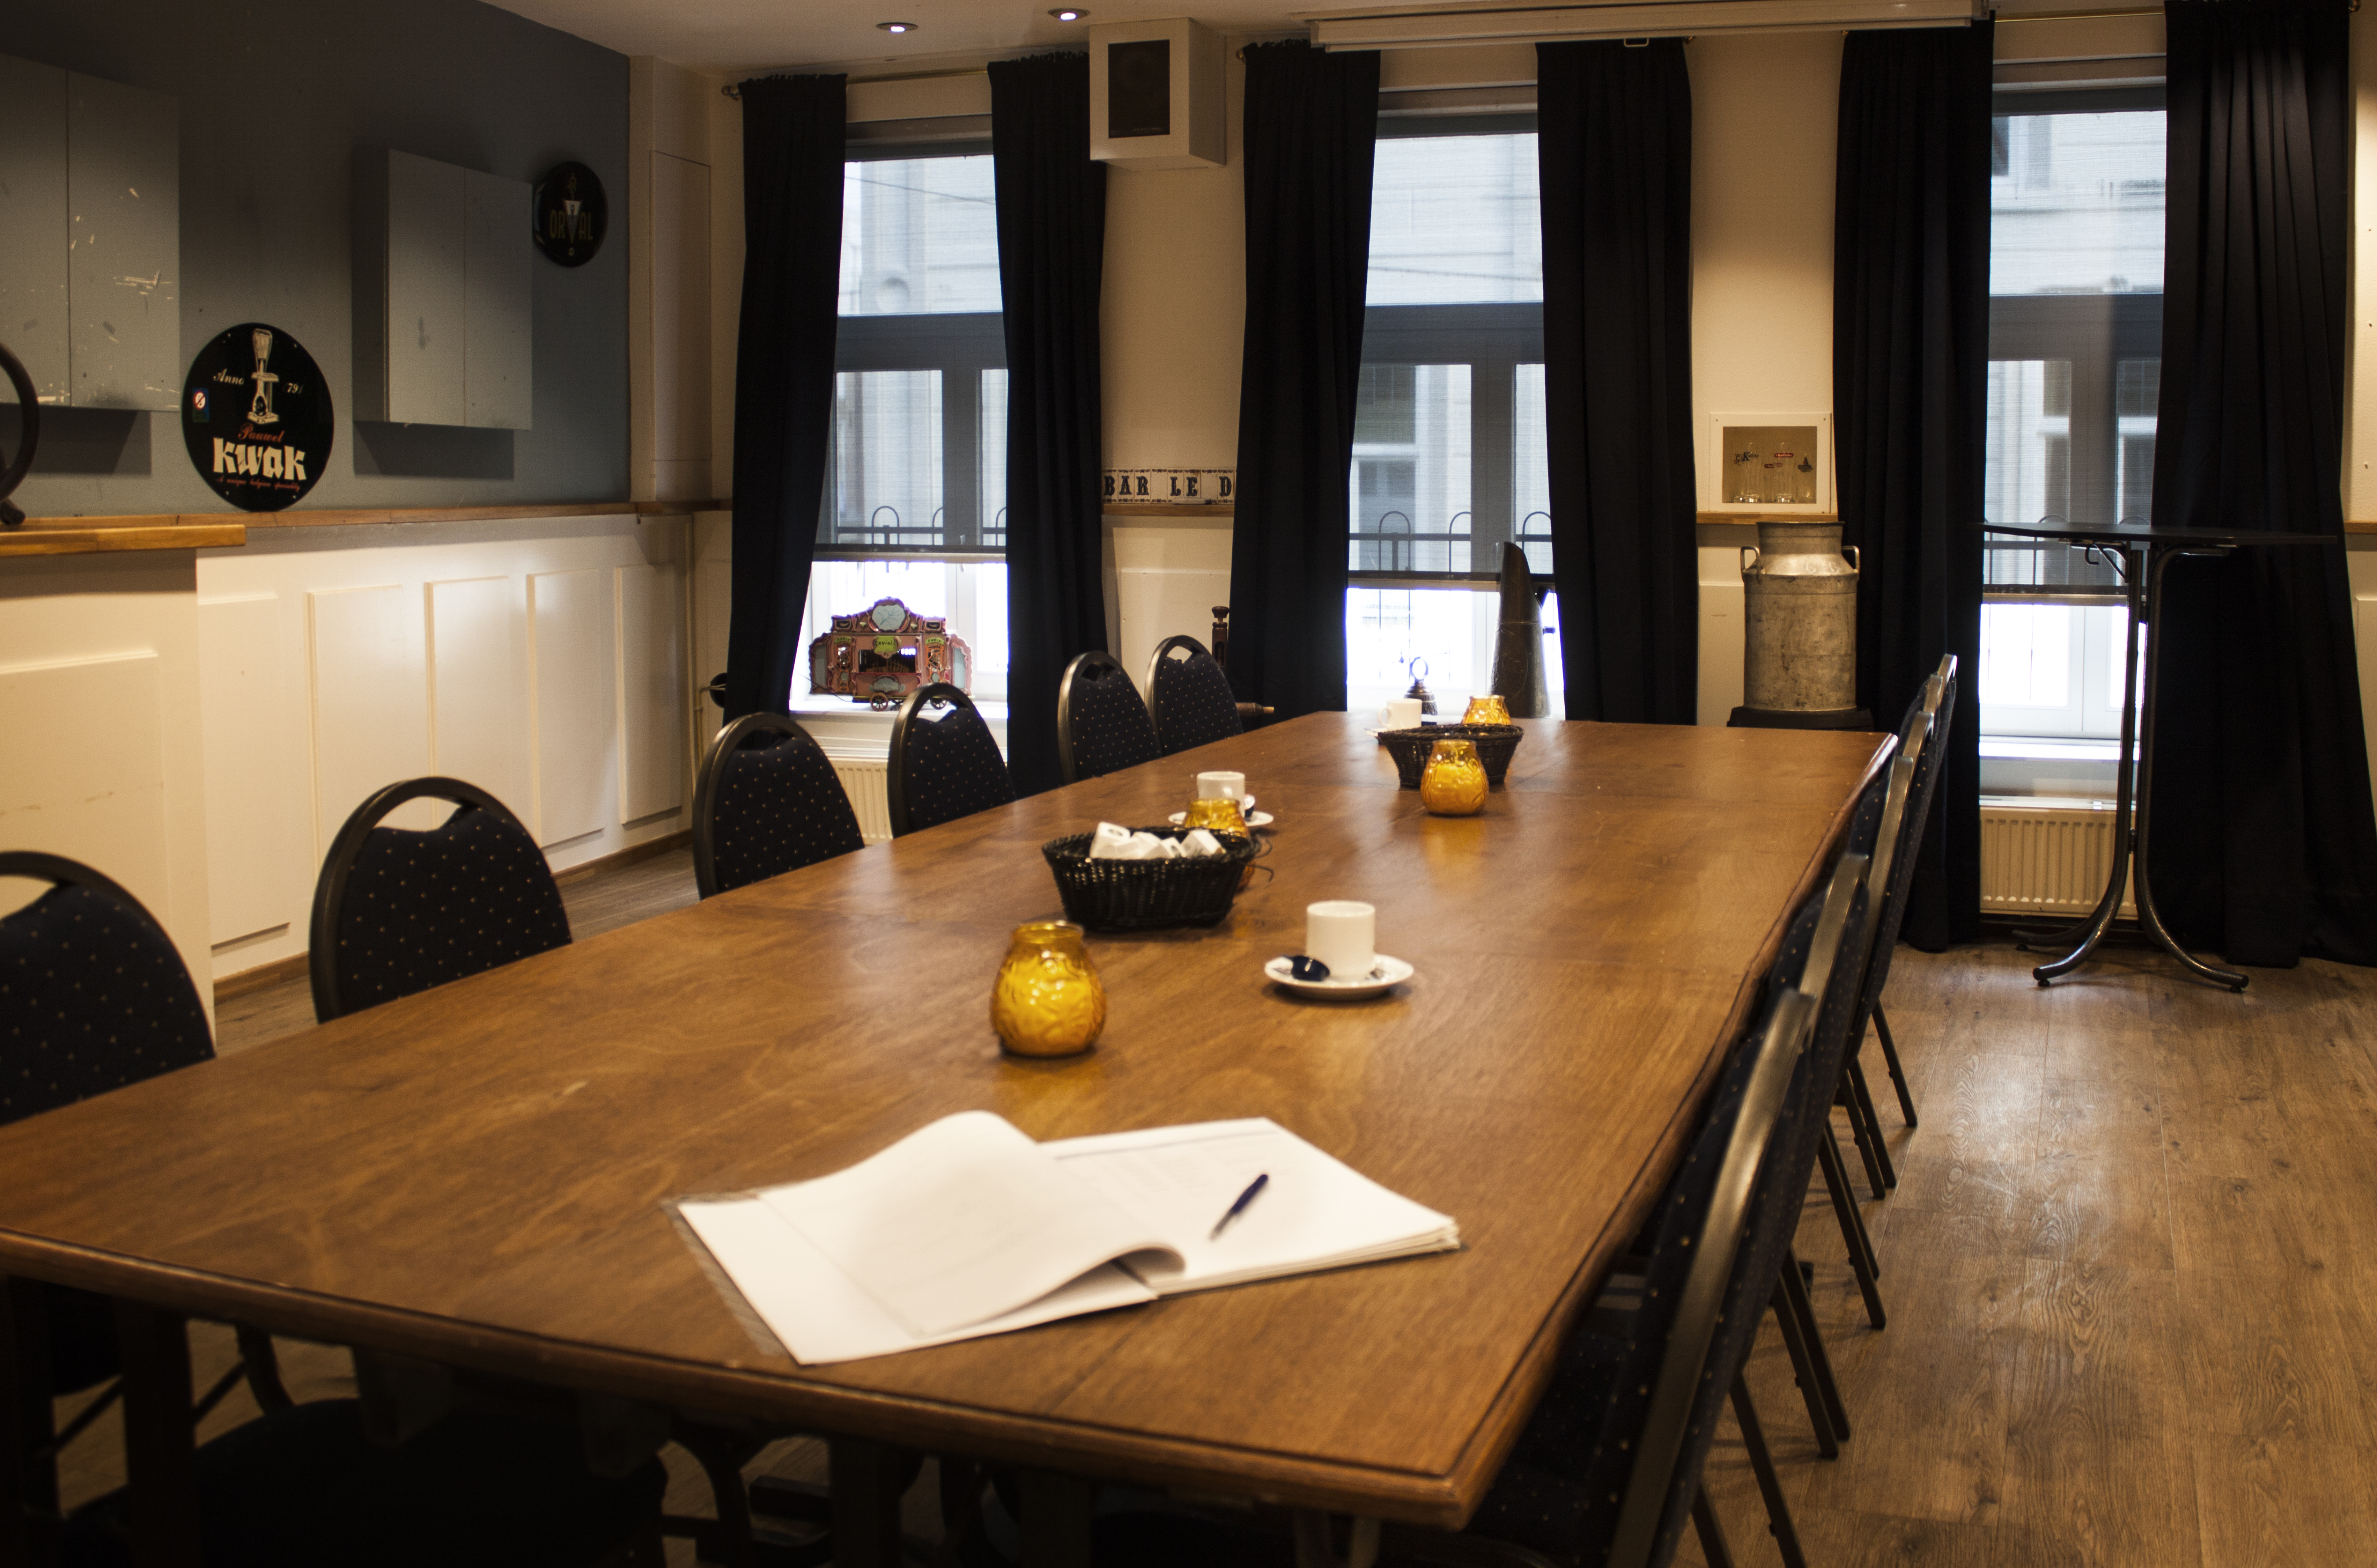 http://cafebarleduc.nl/wp-content/uploads/2015/10/Zaal-2-grote-tafel.jpg